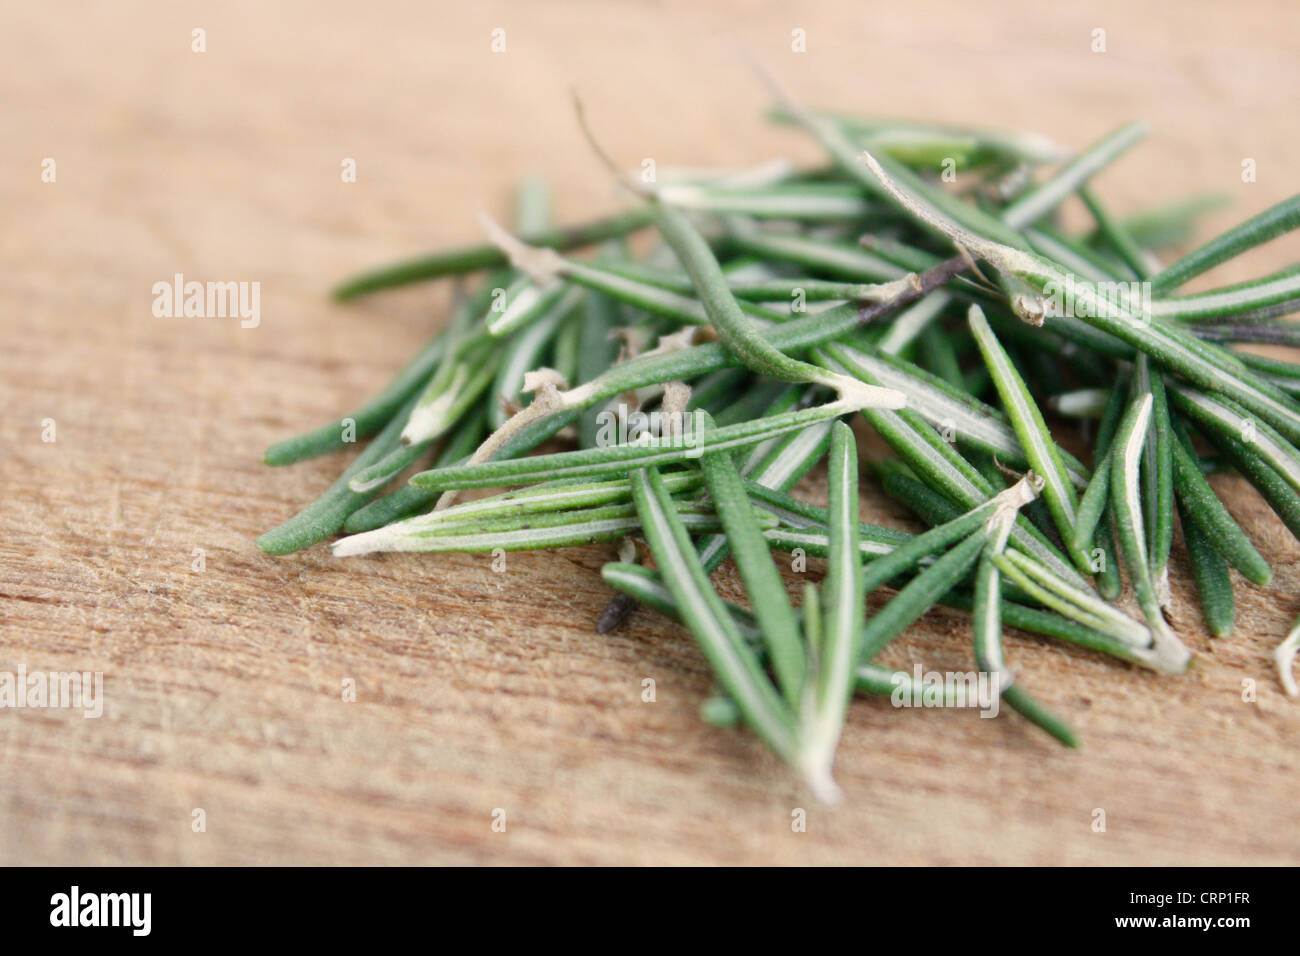 A bunch of rosemary leaves - Stock Image